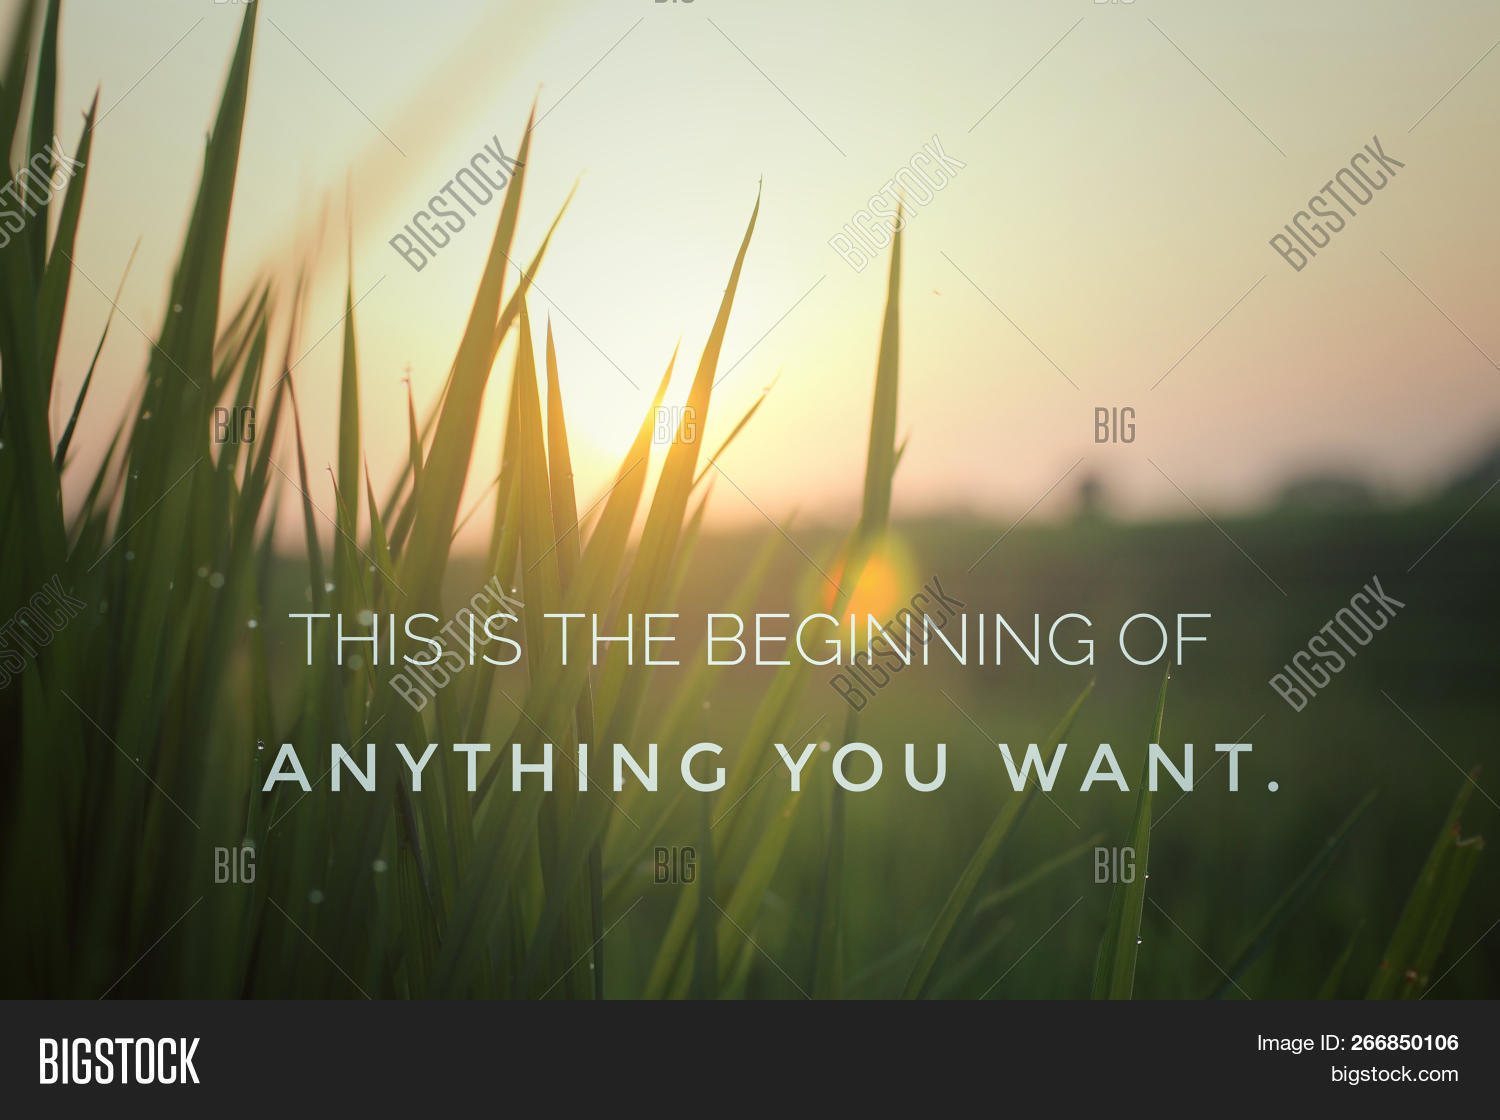 New Year New Day Image Photo Free Trial Bigstock